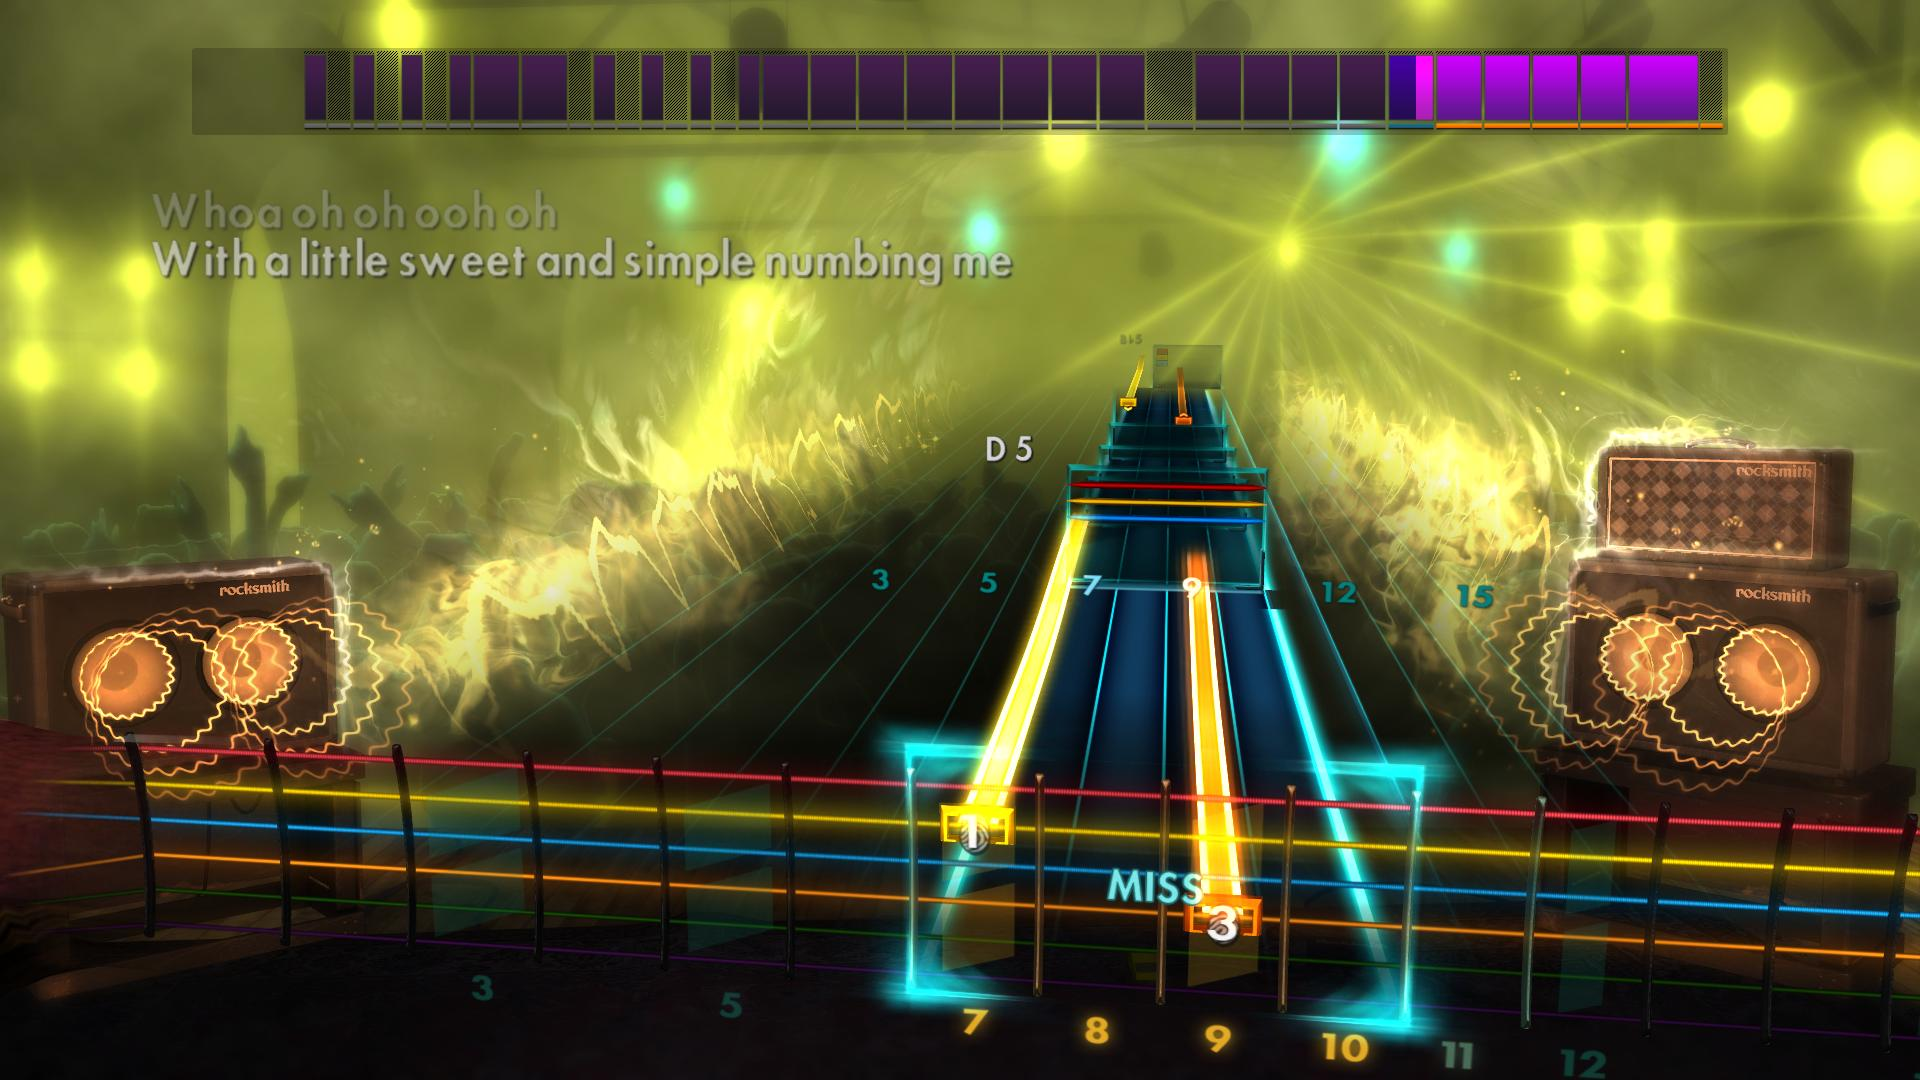 Rocksmith 2014 Edition: Remastered - Jimmy Eat World: Bleed American 2018 pc game Img-4